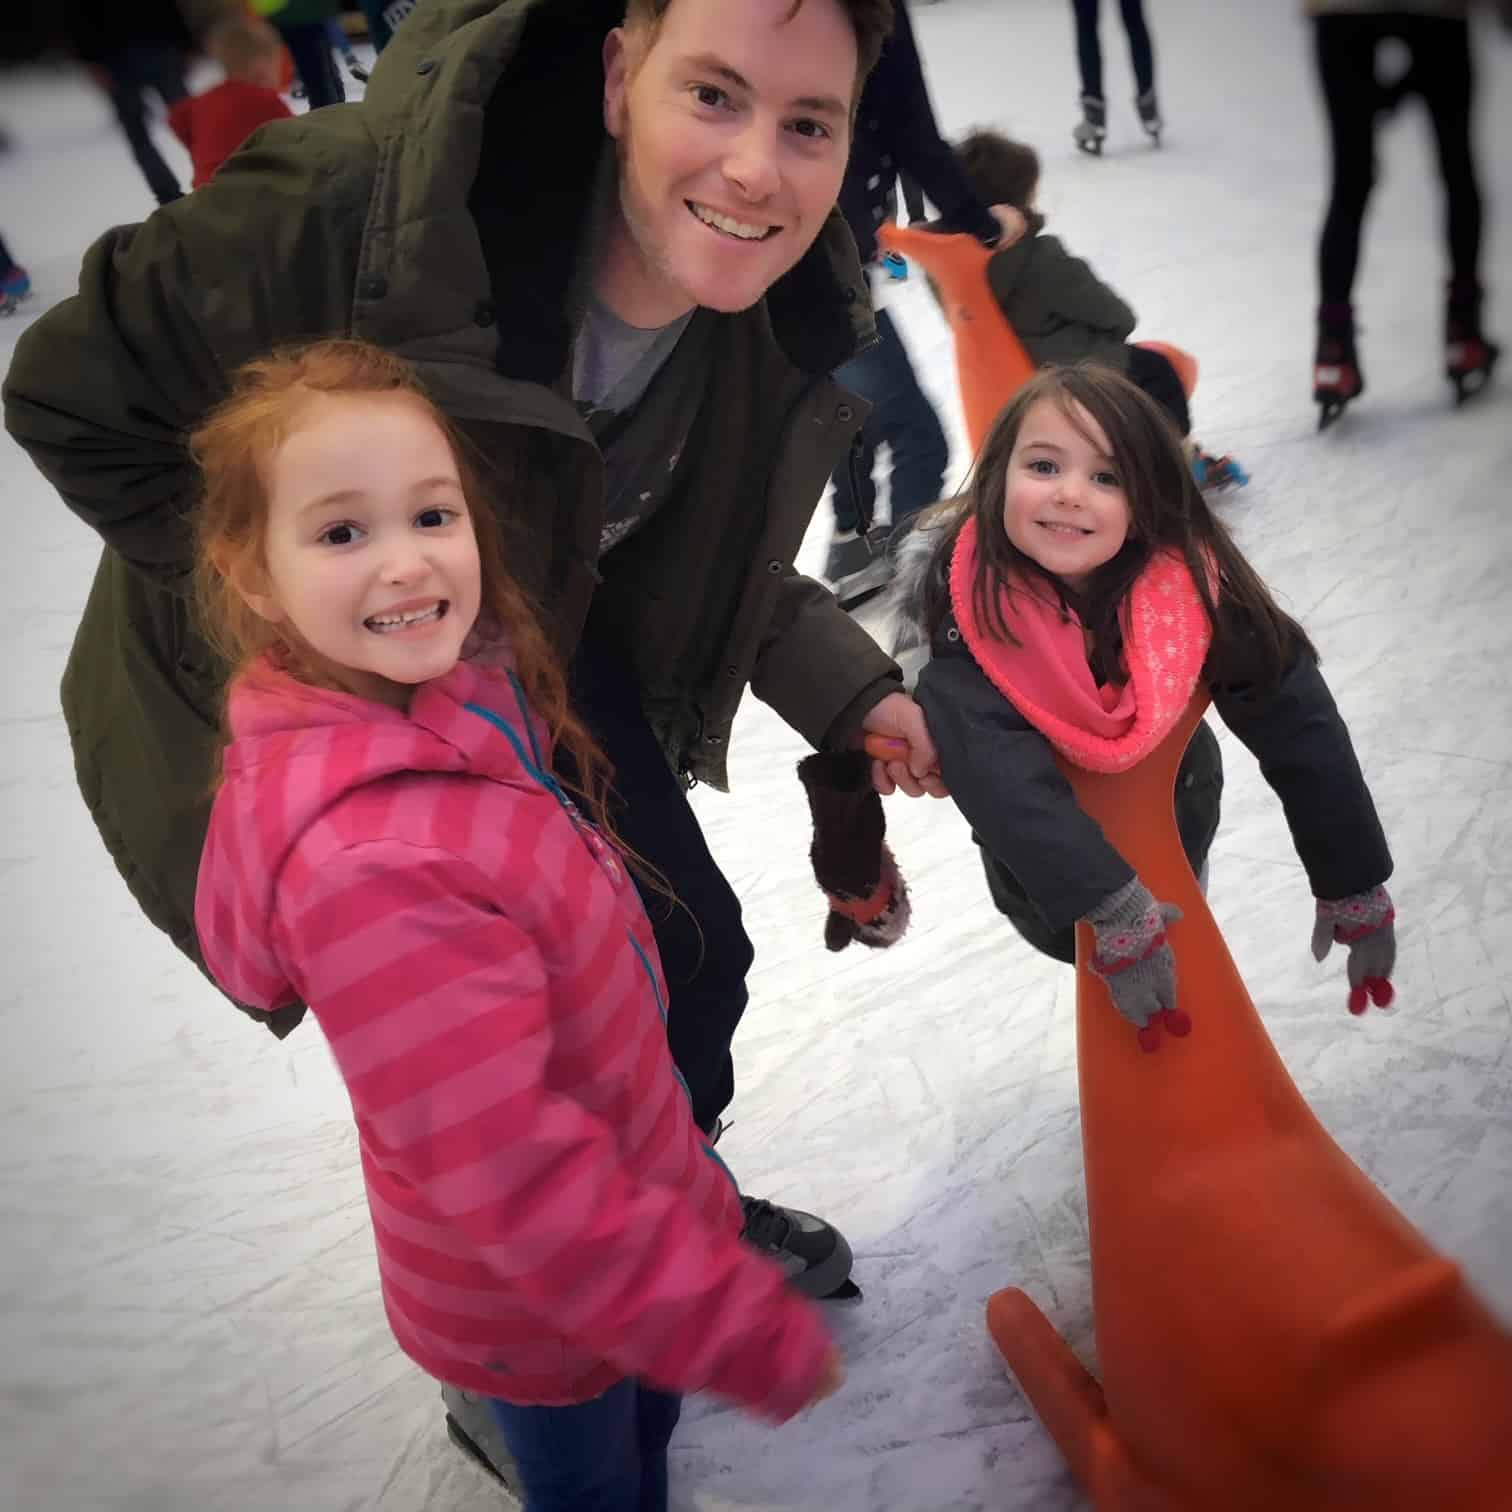 Ice skating fun